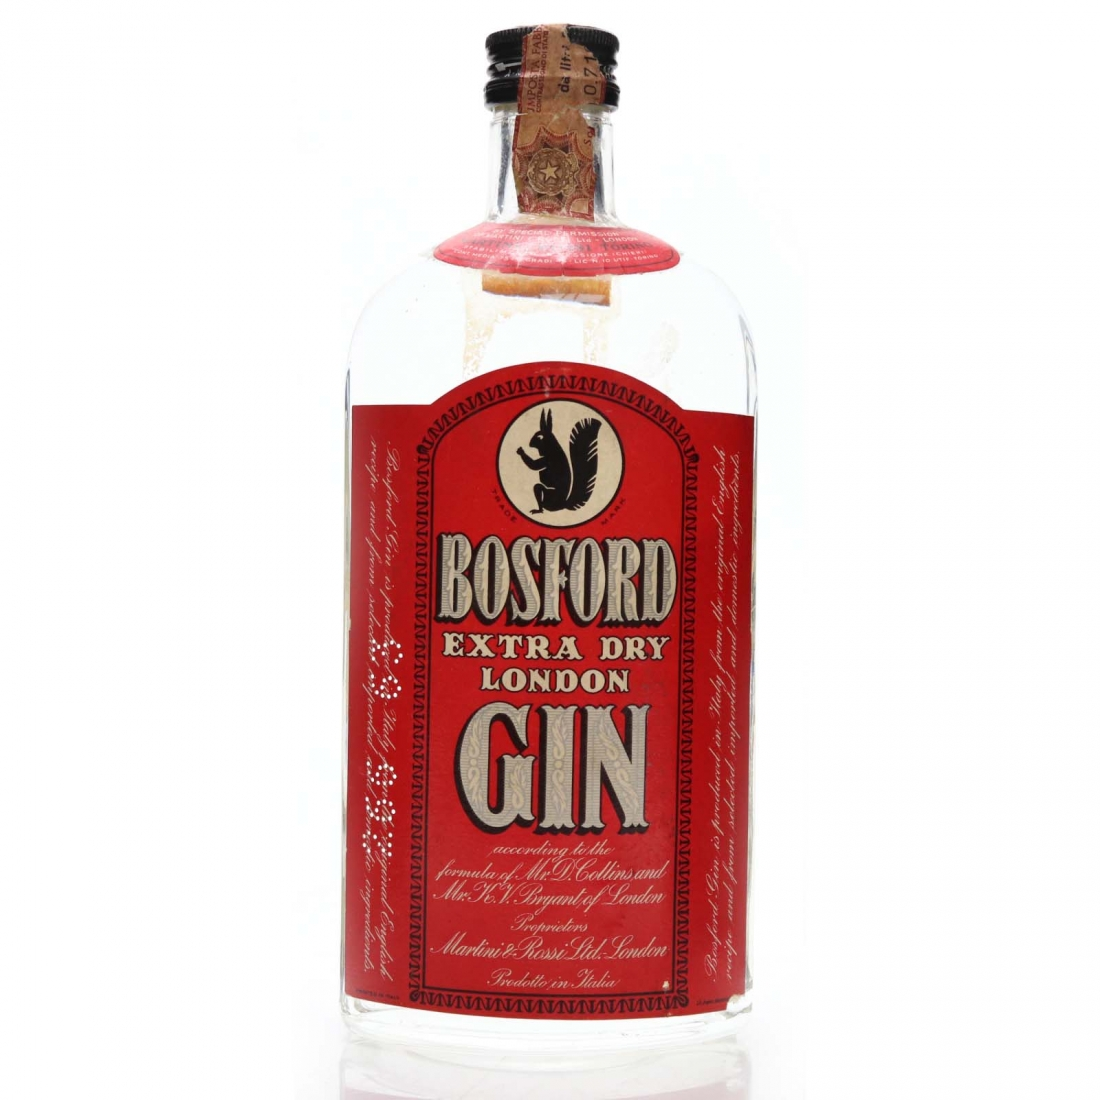 Bosford Extra Dry London Gin 1960s